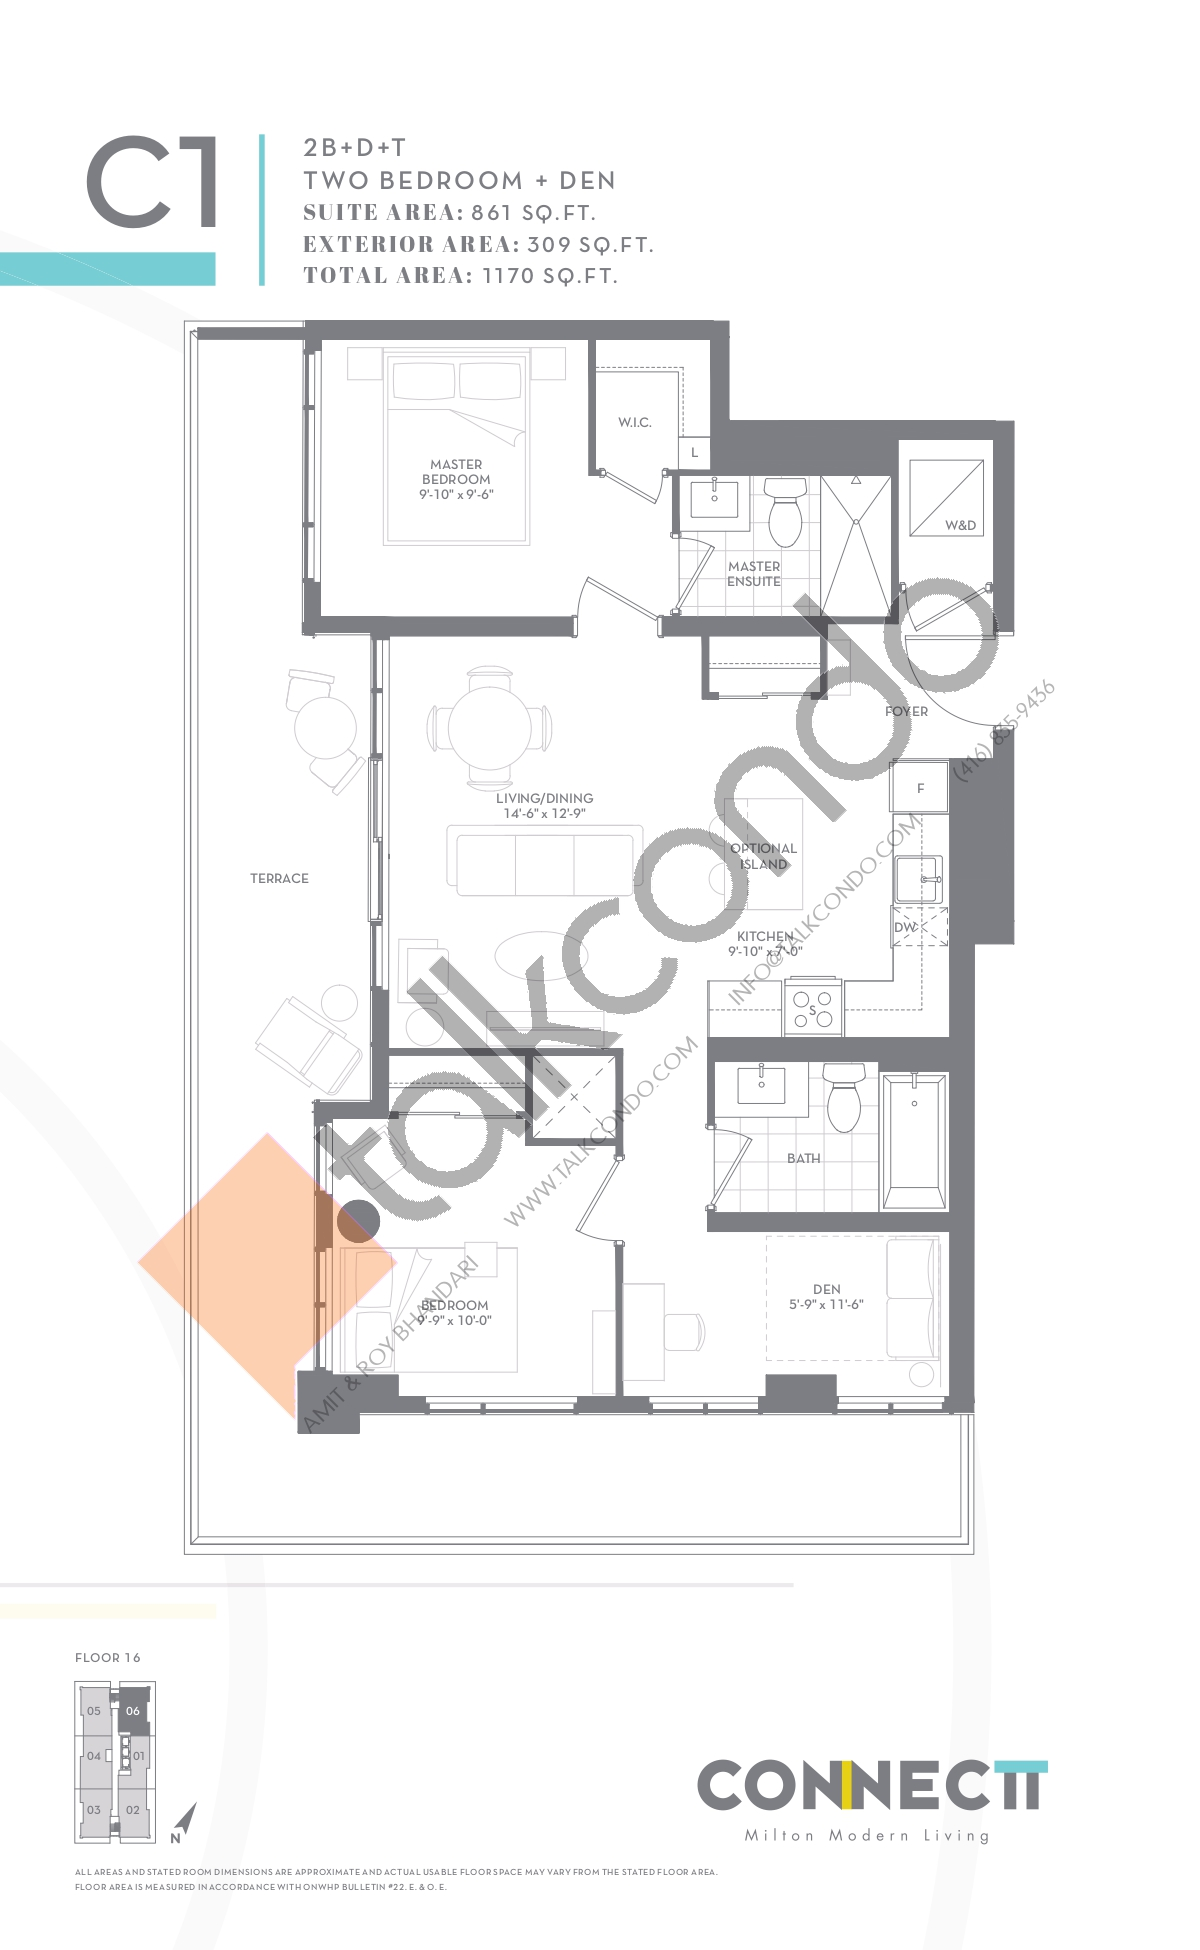 2B+D+T Floor Plan at Connectt Urban Community Condos - 861 sq.ft